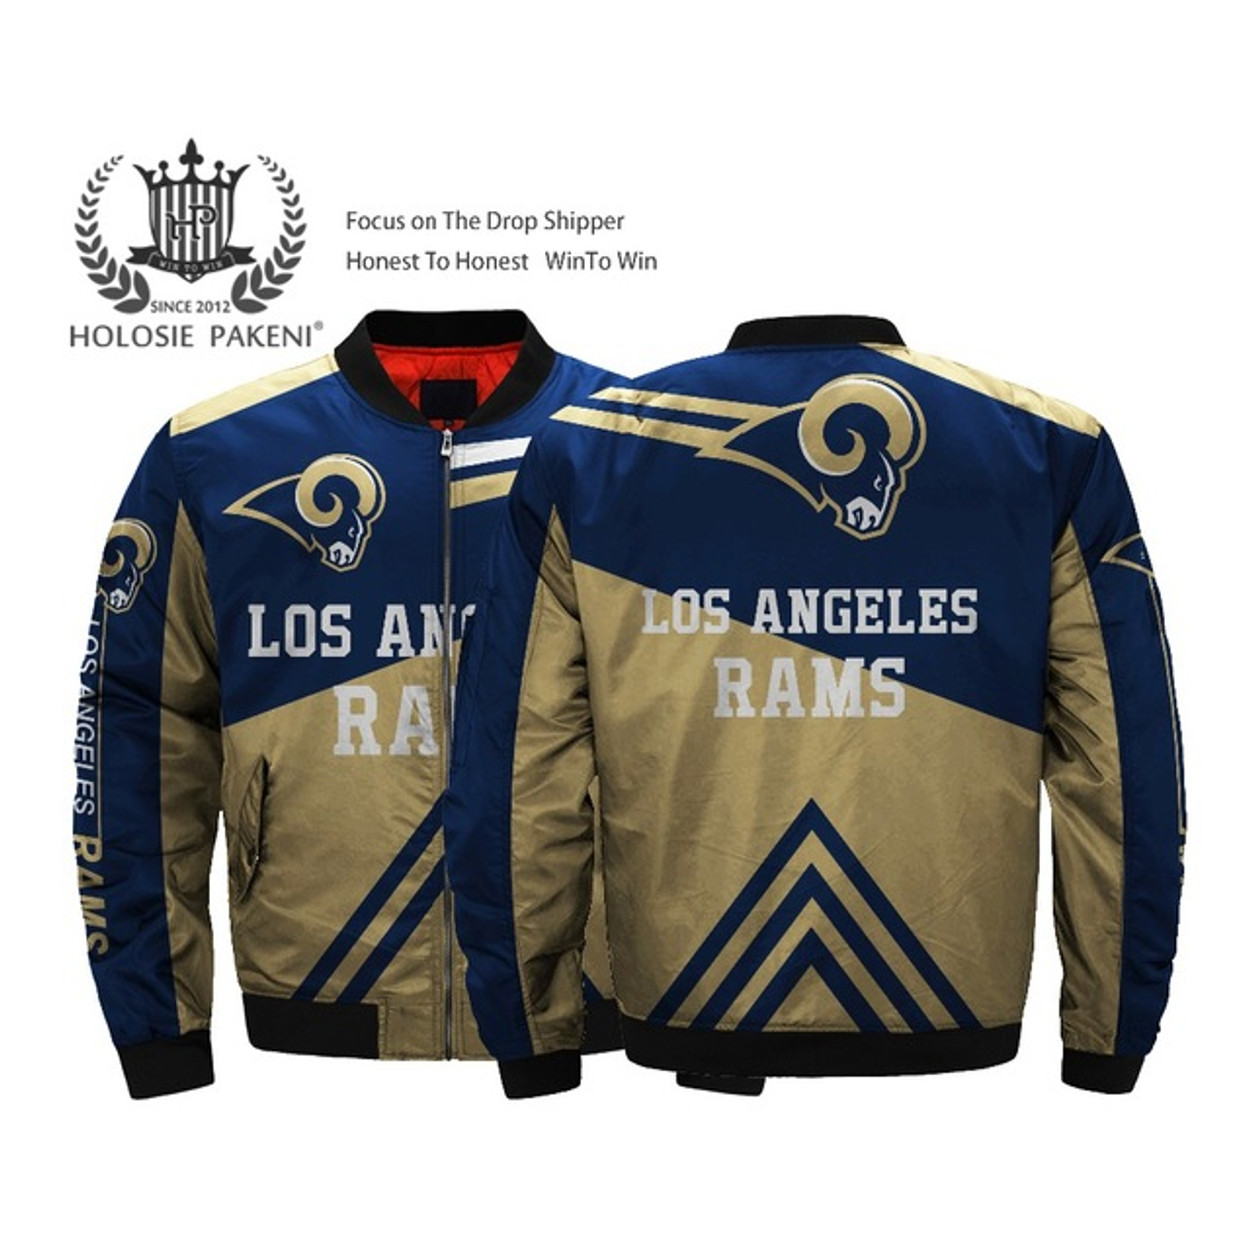 (OFFICIALLY-LICENSED-N.F.L. LOS-ANGELES-RAMS   OFFICIAL-RAMS-TEAM-COLORS    OFFICIAL-RAMS-LOGO ... 9431b60e089f